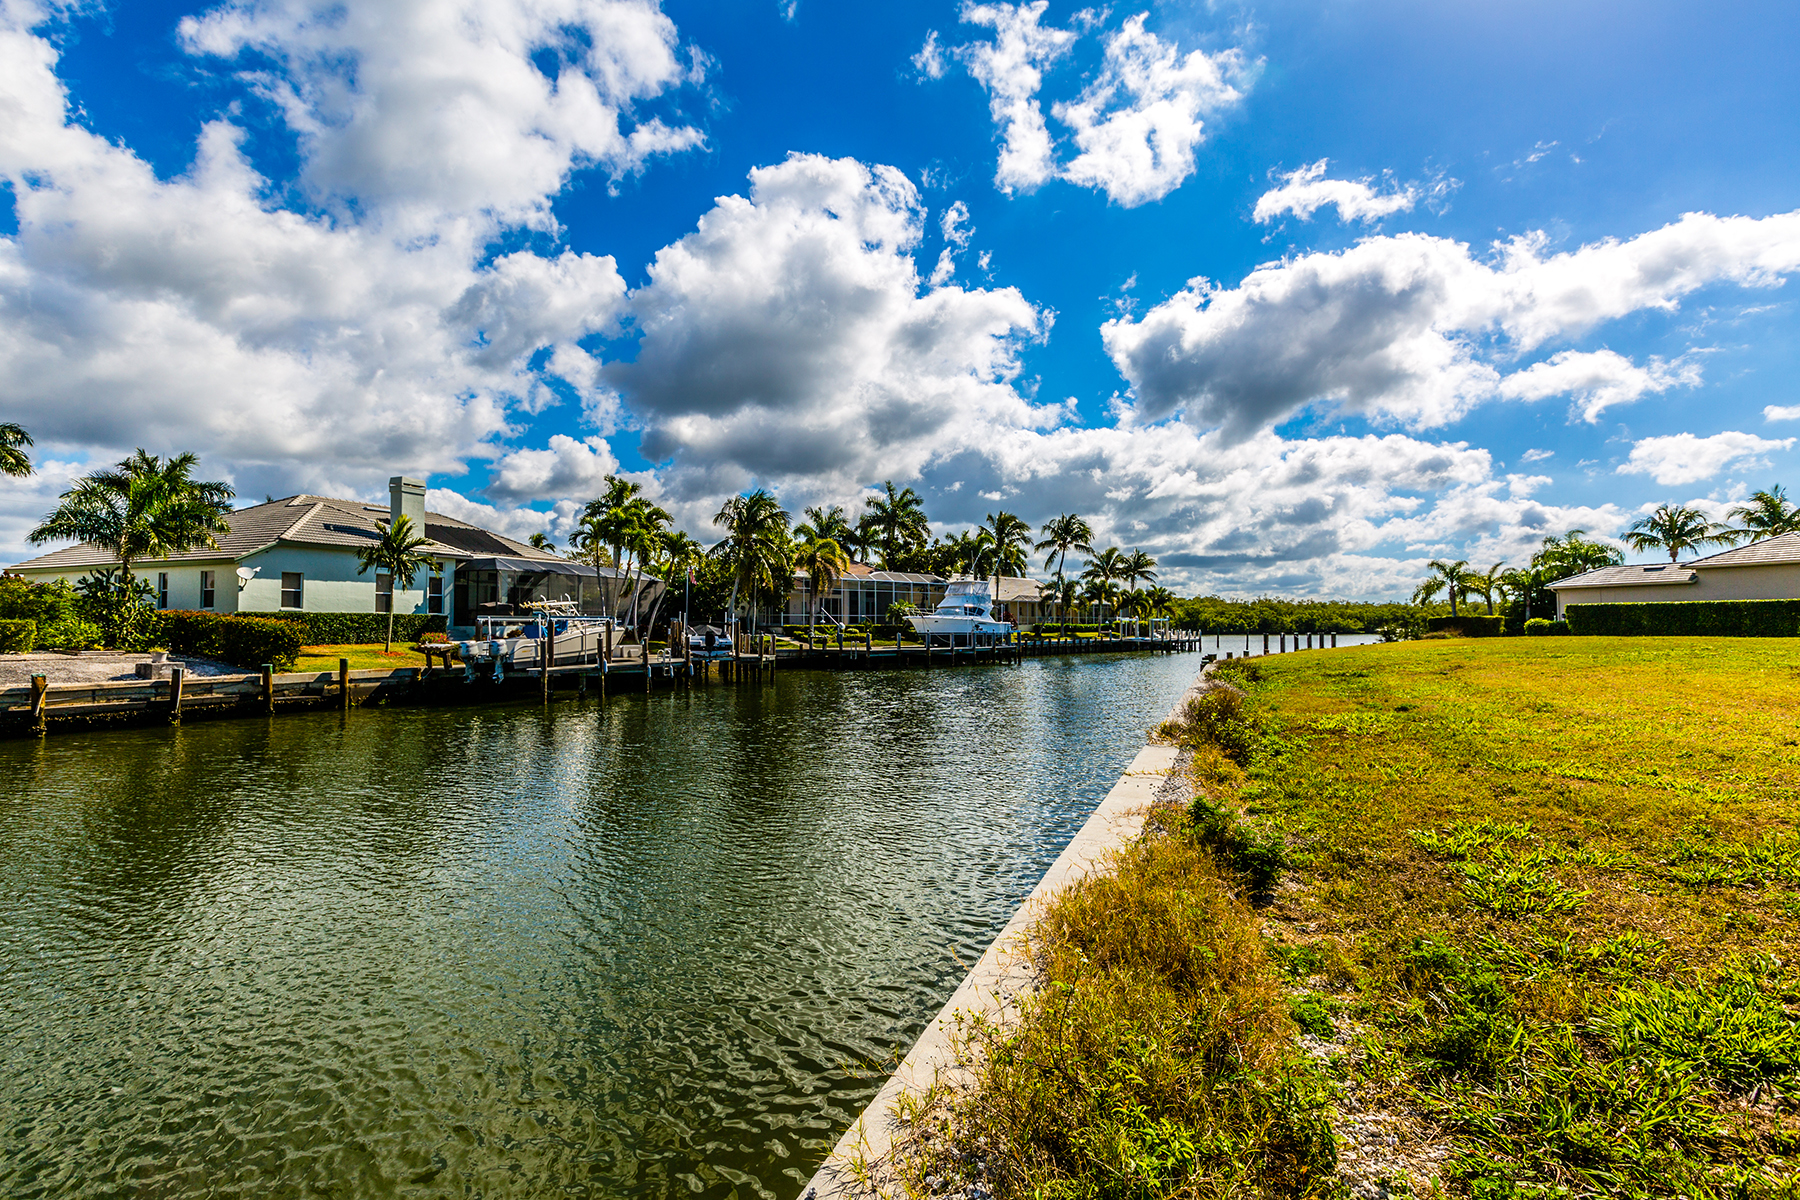 Land for Sale at MARCO ISLAND 131 Hollyhock Ct, Marco Island, Florida 34145 United States